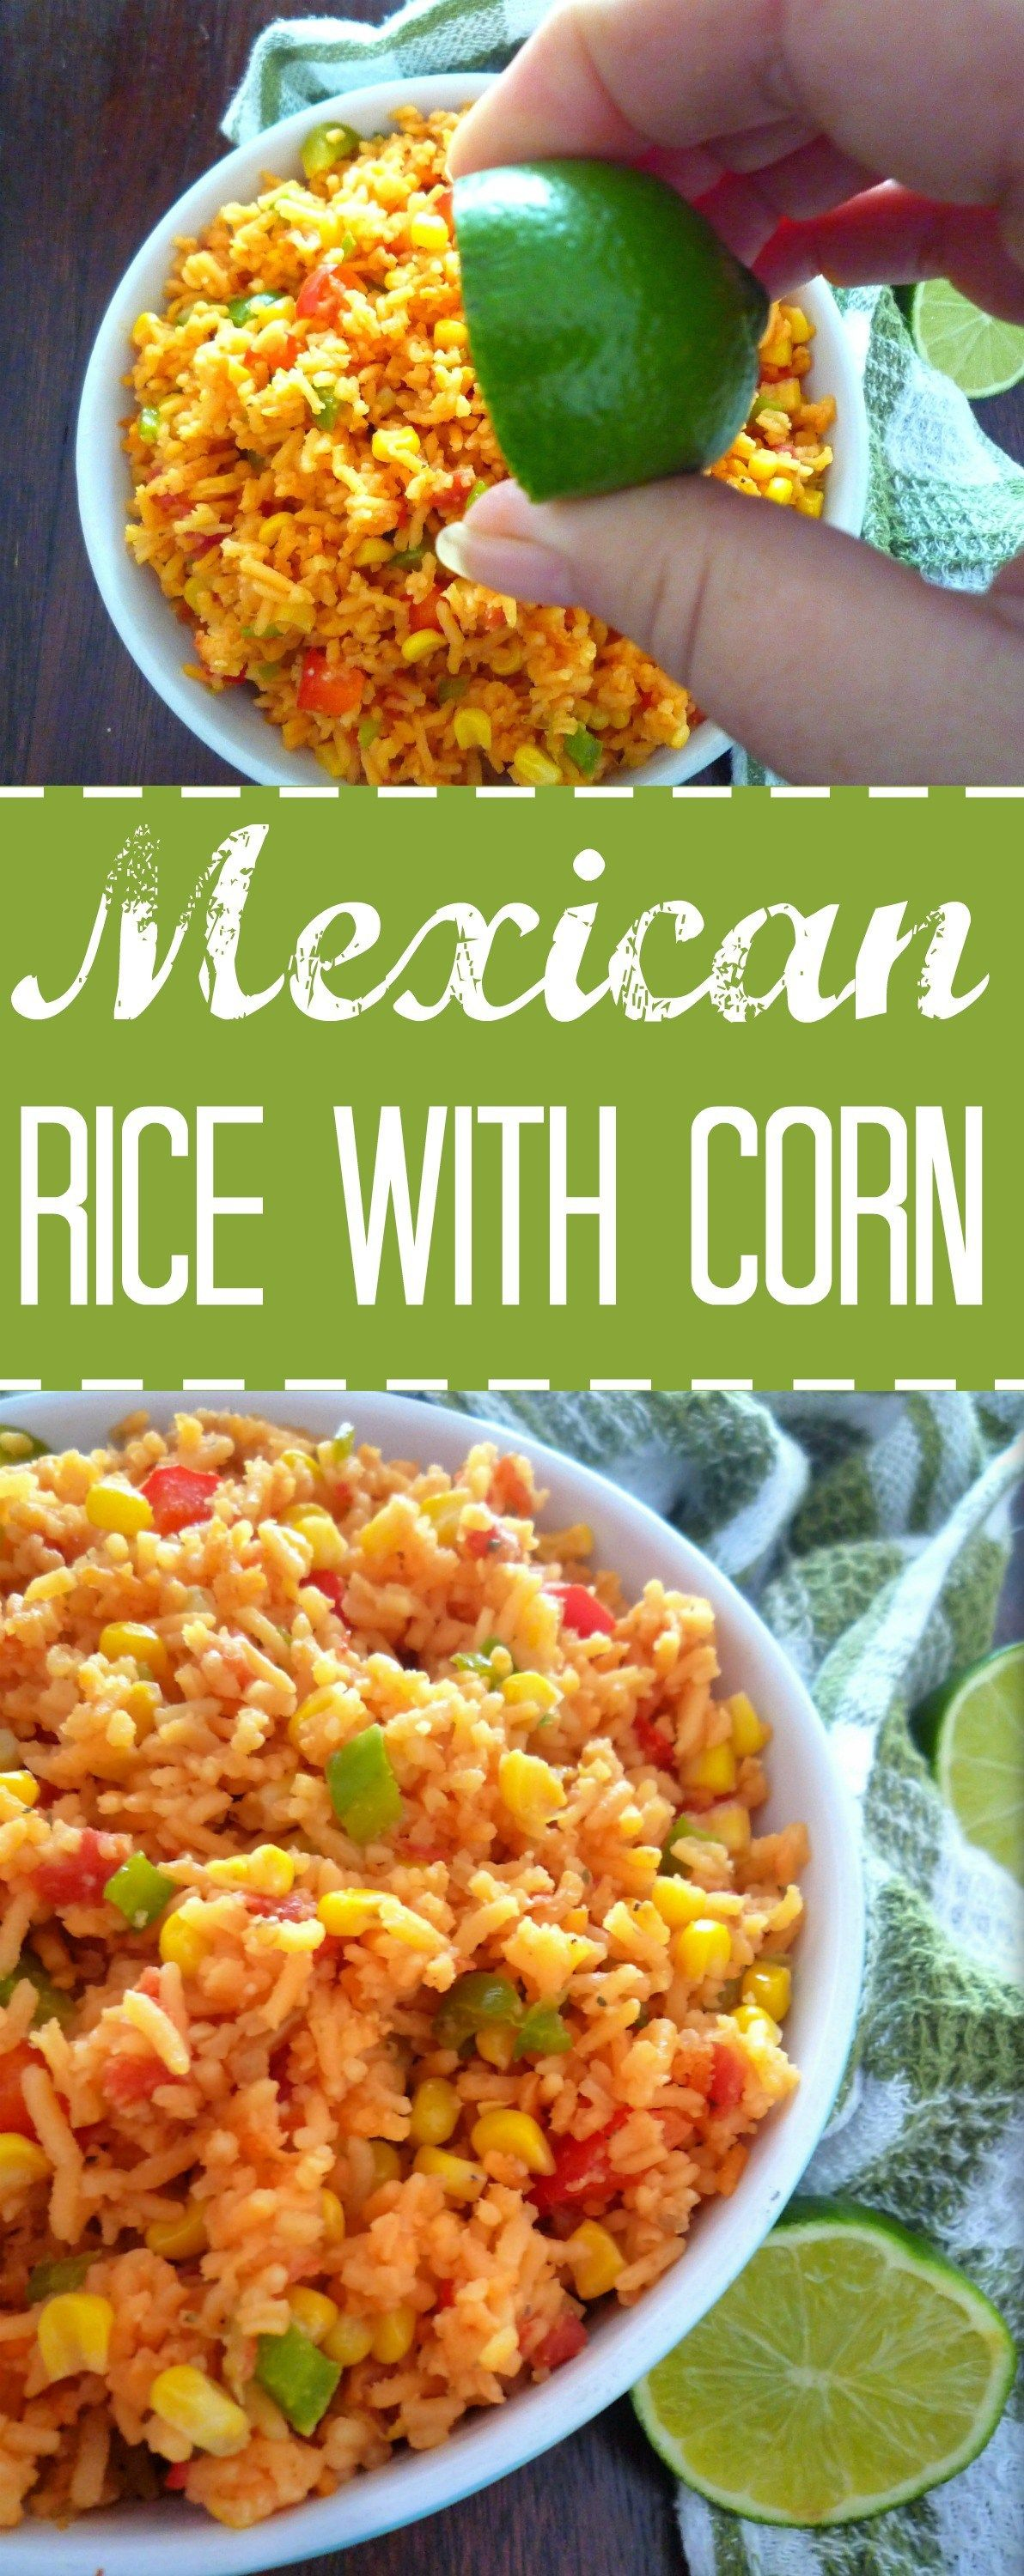 Mexican Rice with Corn #seasonedricerecipes